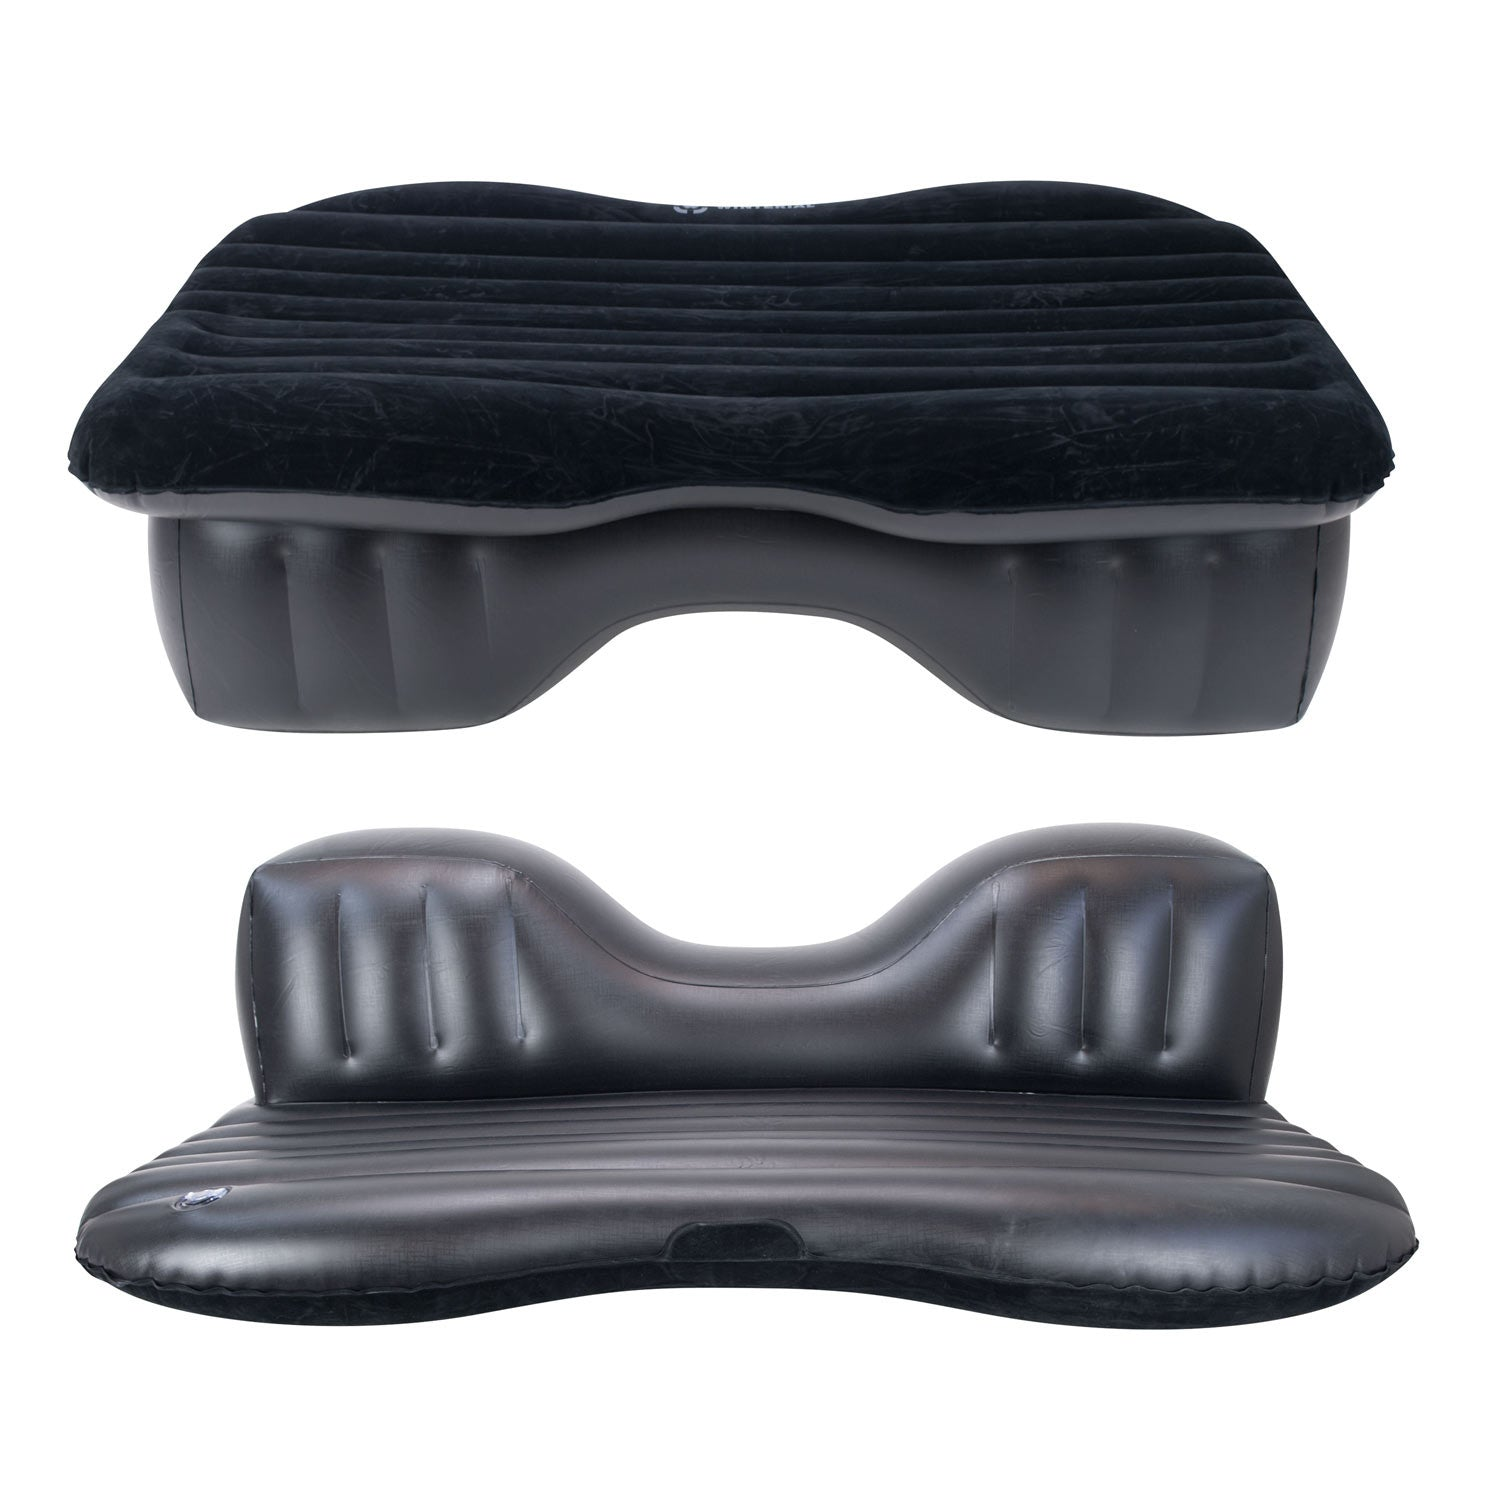 Backseat Inflatable Bed Inflatable Car Camping Mattress For Sedans Suvs Winterialcom